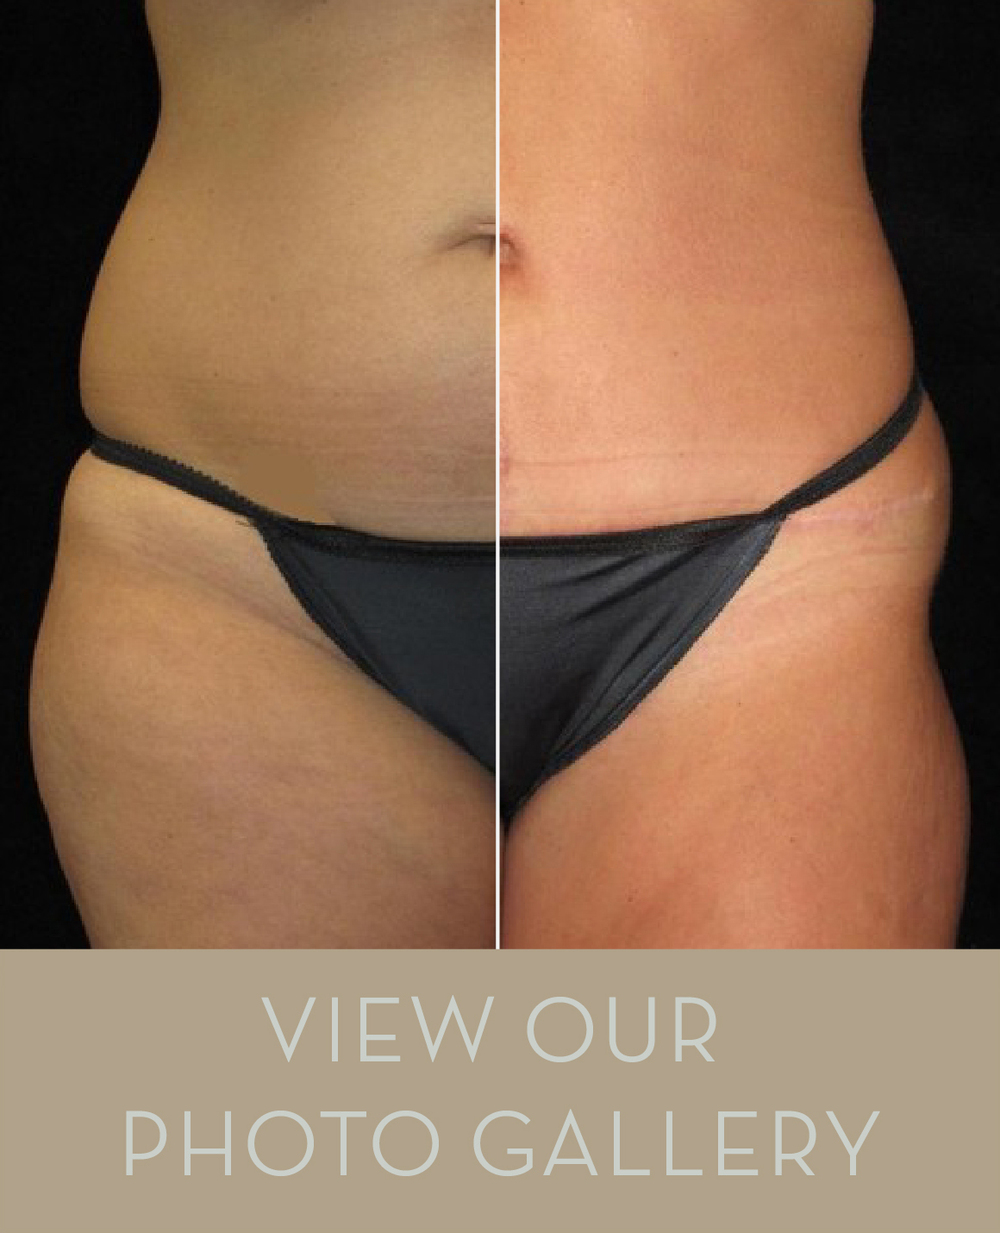 Explore Nashville Cosmetic Surgery's patient results gallery